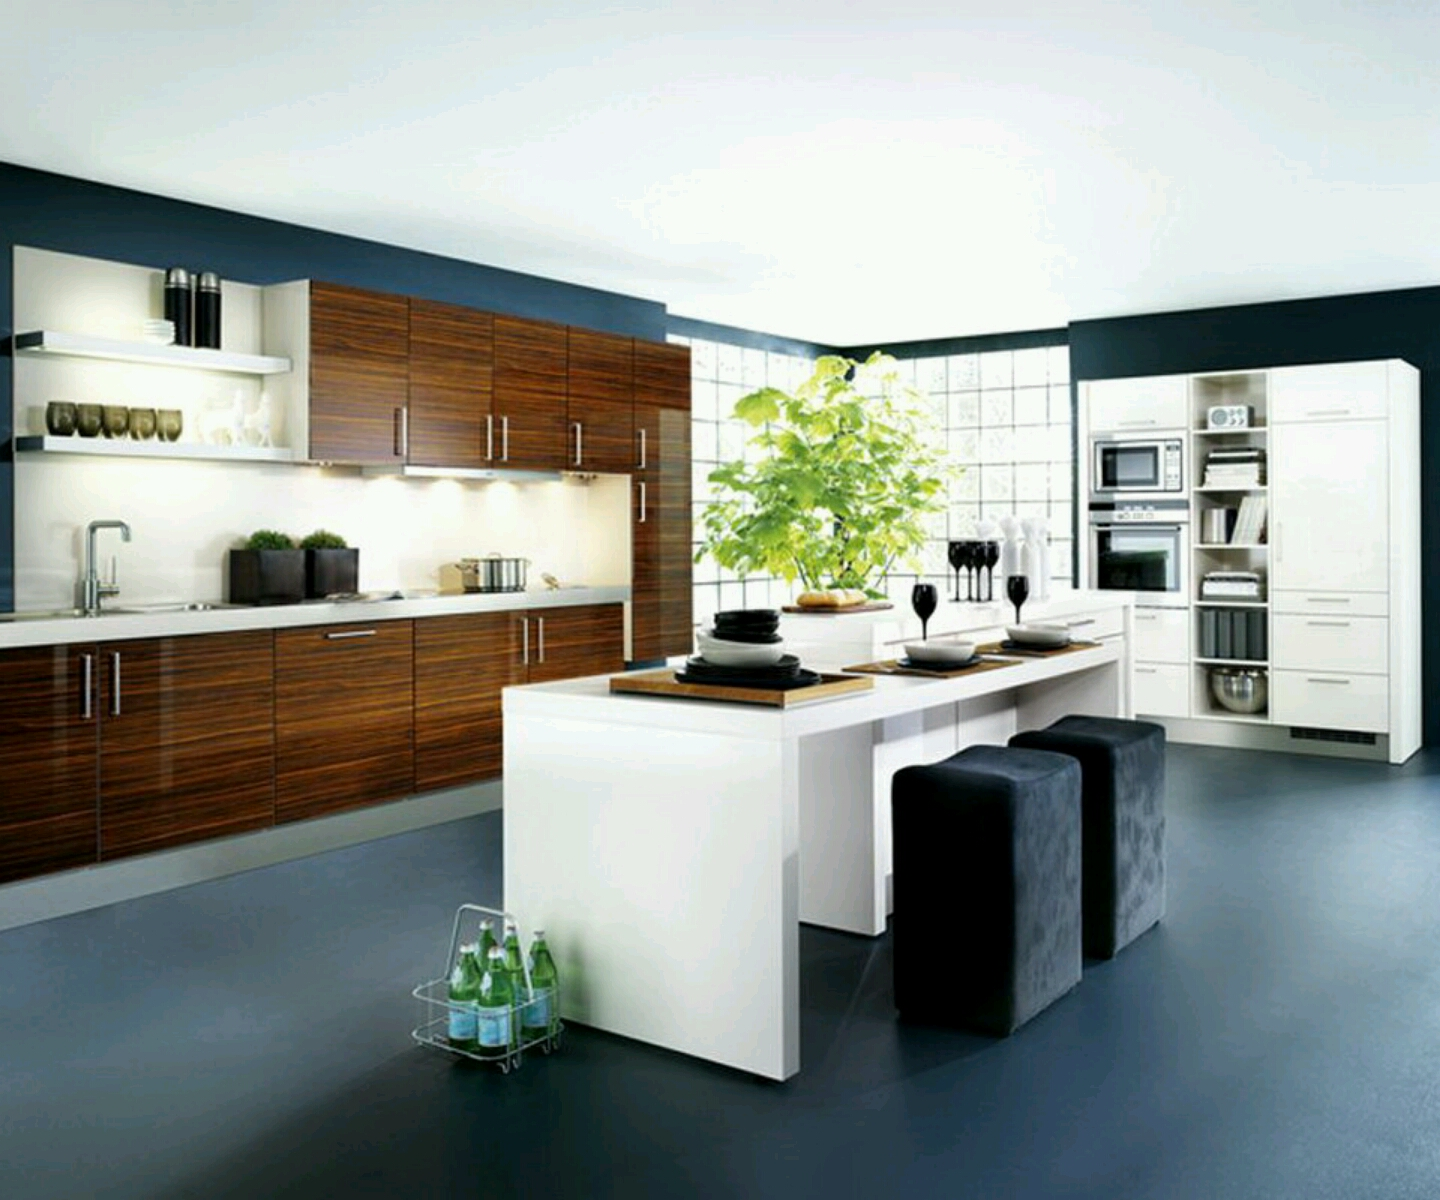 New home designs latest kitchen cabinets designs modern Modern design kitchen designs